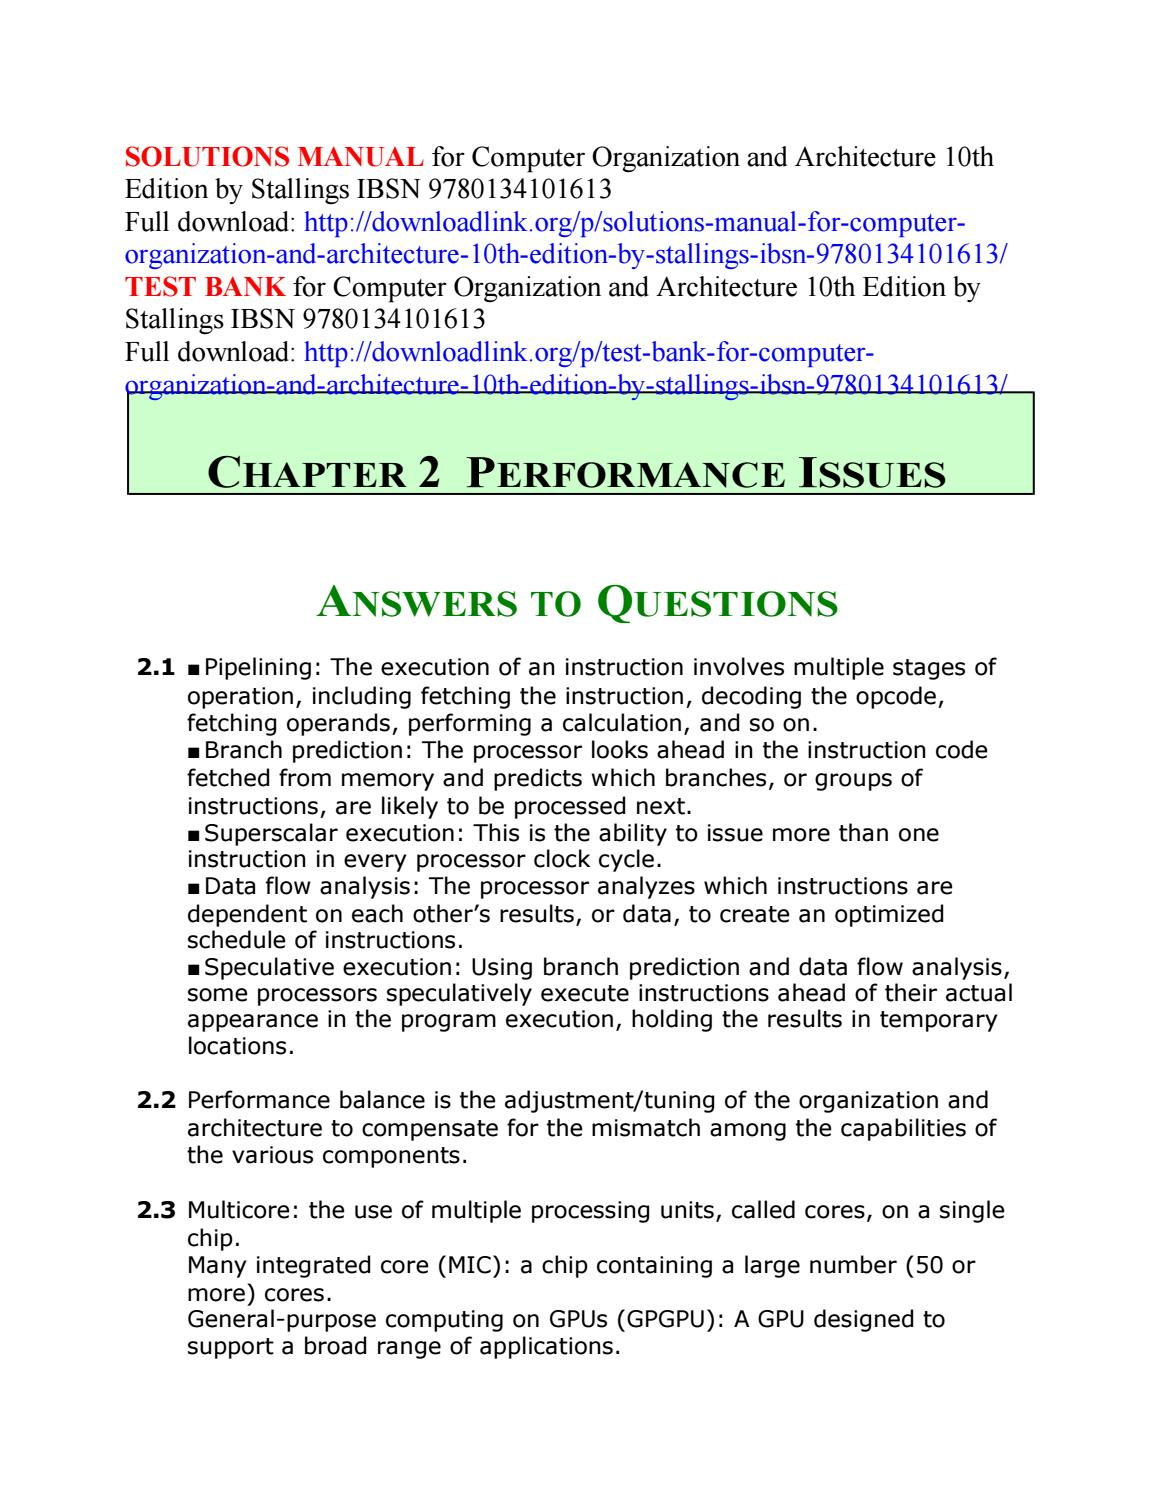 Solutions Manual For Computer Organization And Architecture 10th Edition By Stallings Ibsn 978013410 By Gracezz Issuu